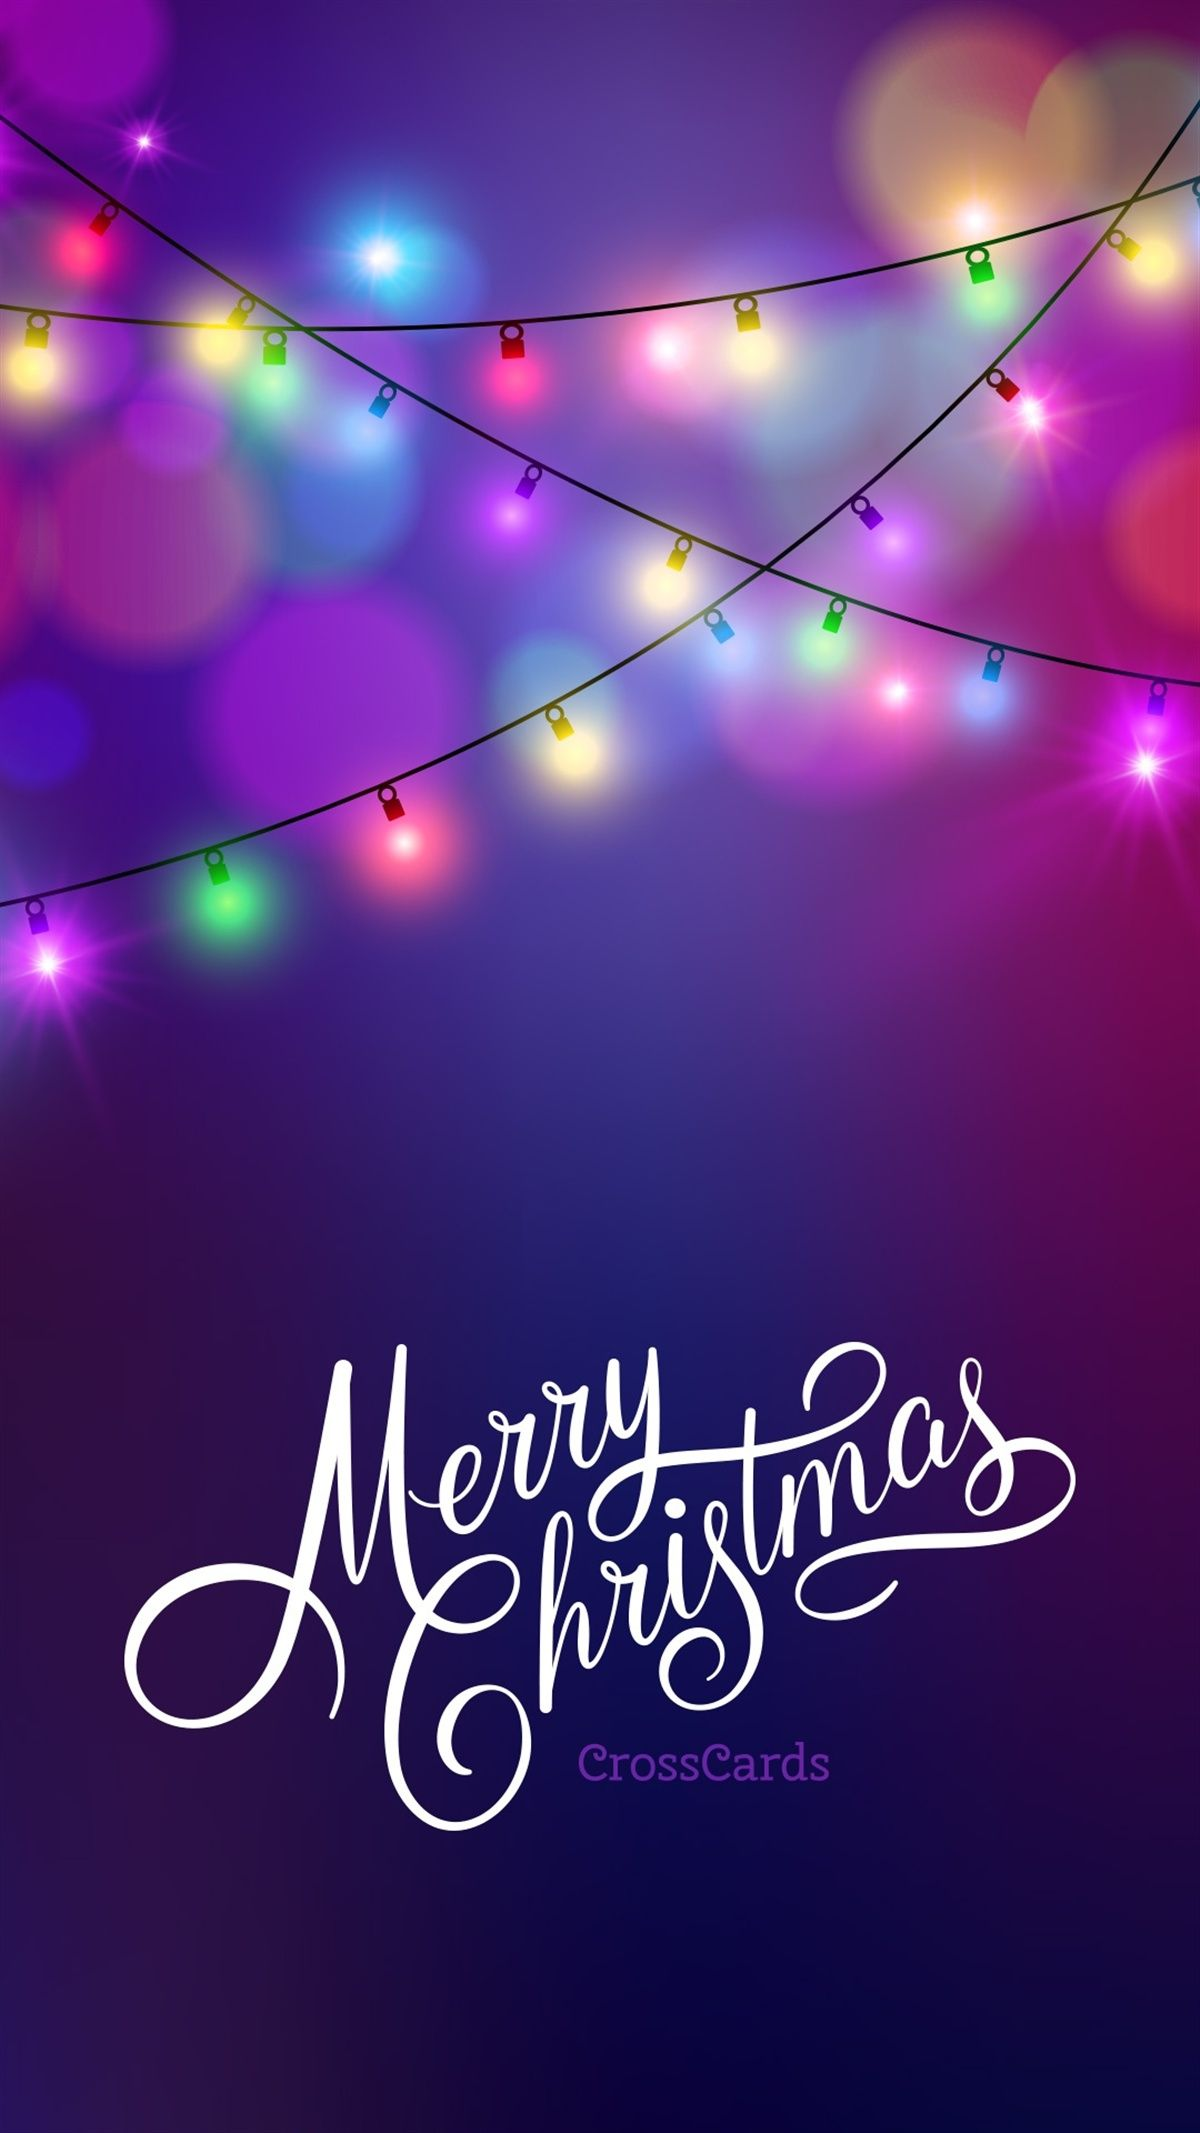 Christmas 2020 Phone Free download Merry Christmas mobile phone wallpaper in 2020